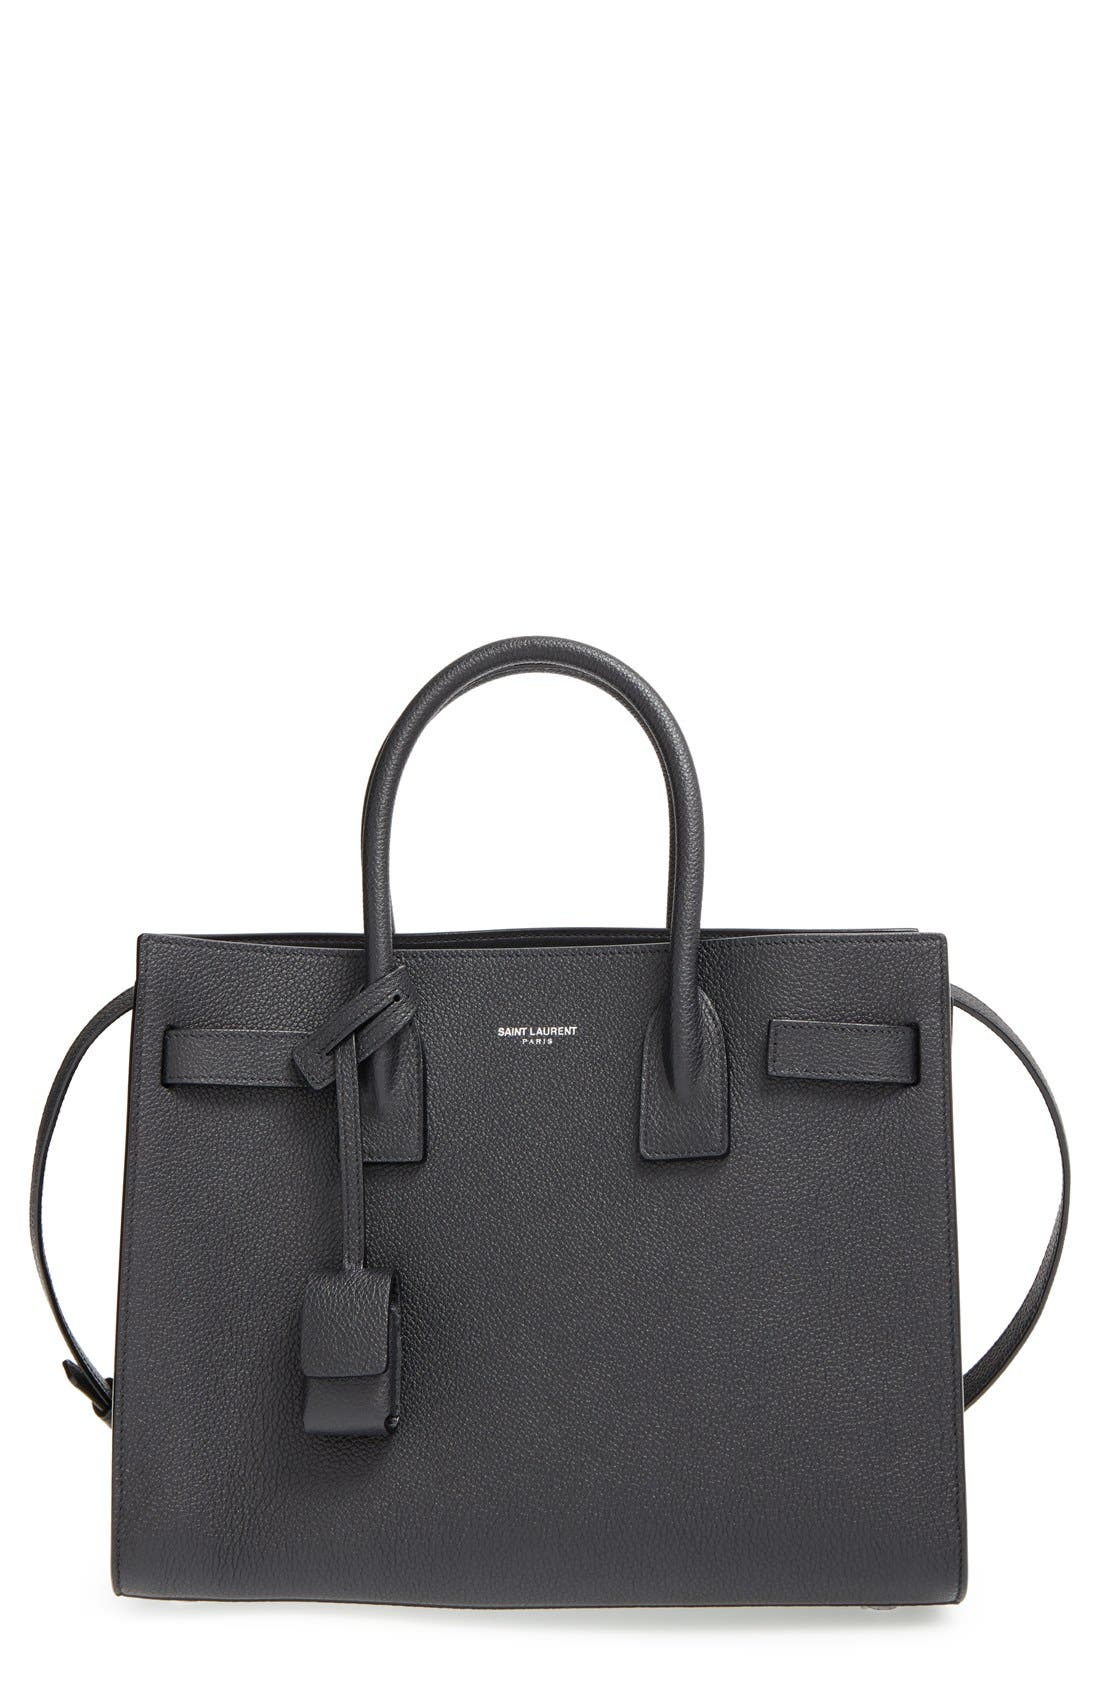 'Baby Sac de Jour' Calfskin Leather Tote, Main, color, 001